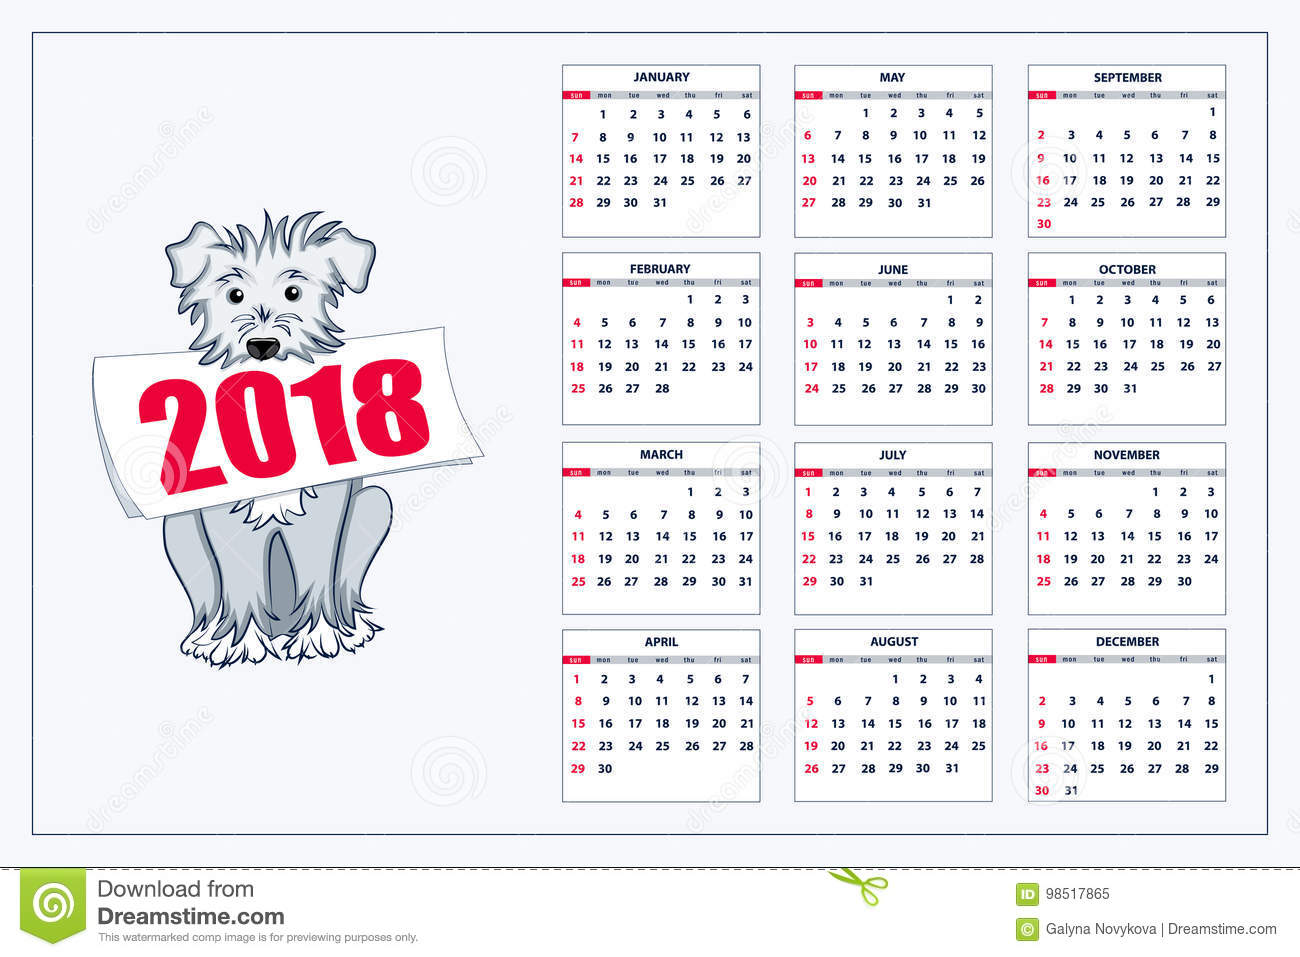 Calendario Con Week 2018.Creative Calendar With Drawn Blue Dog For Wall Year 2018